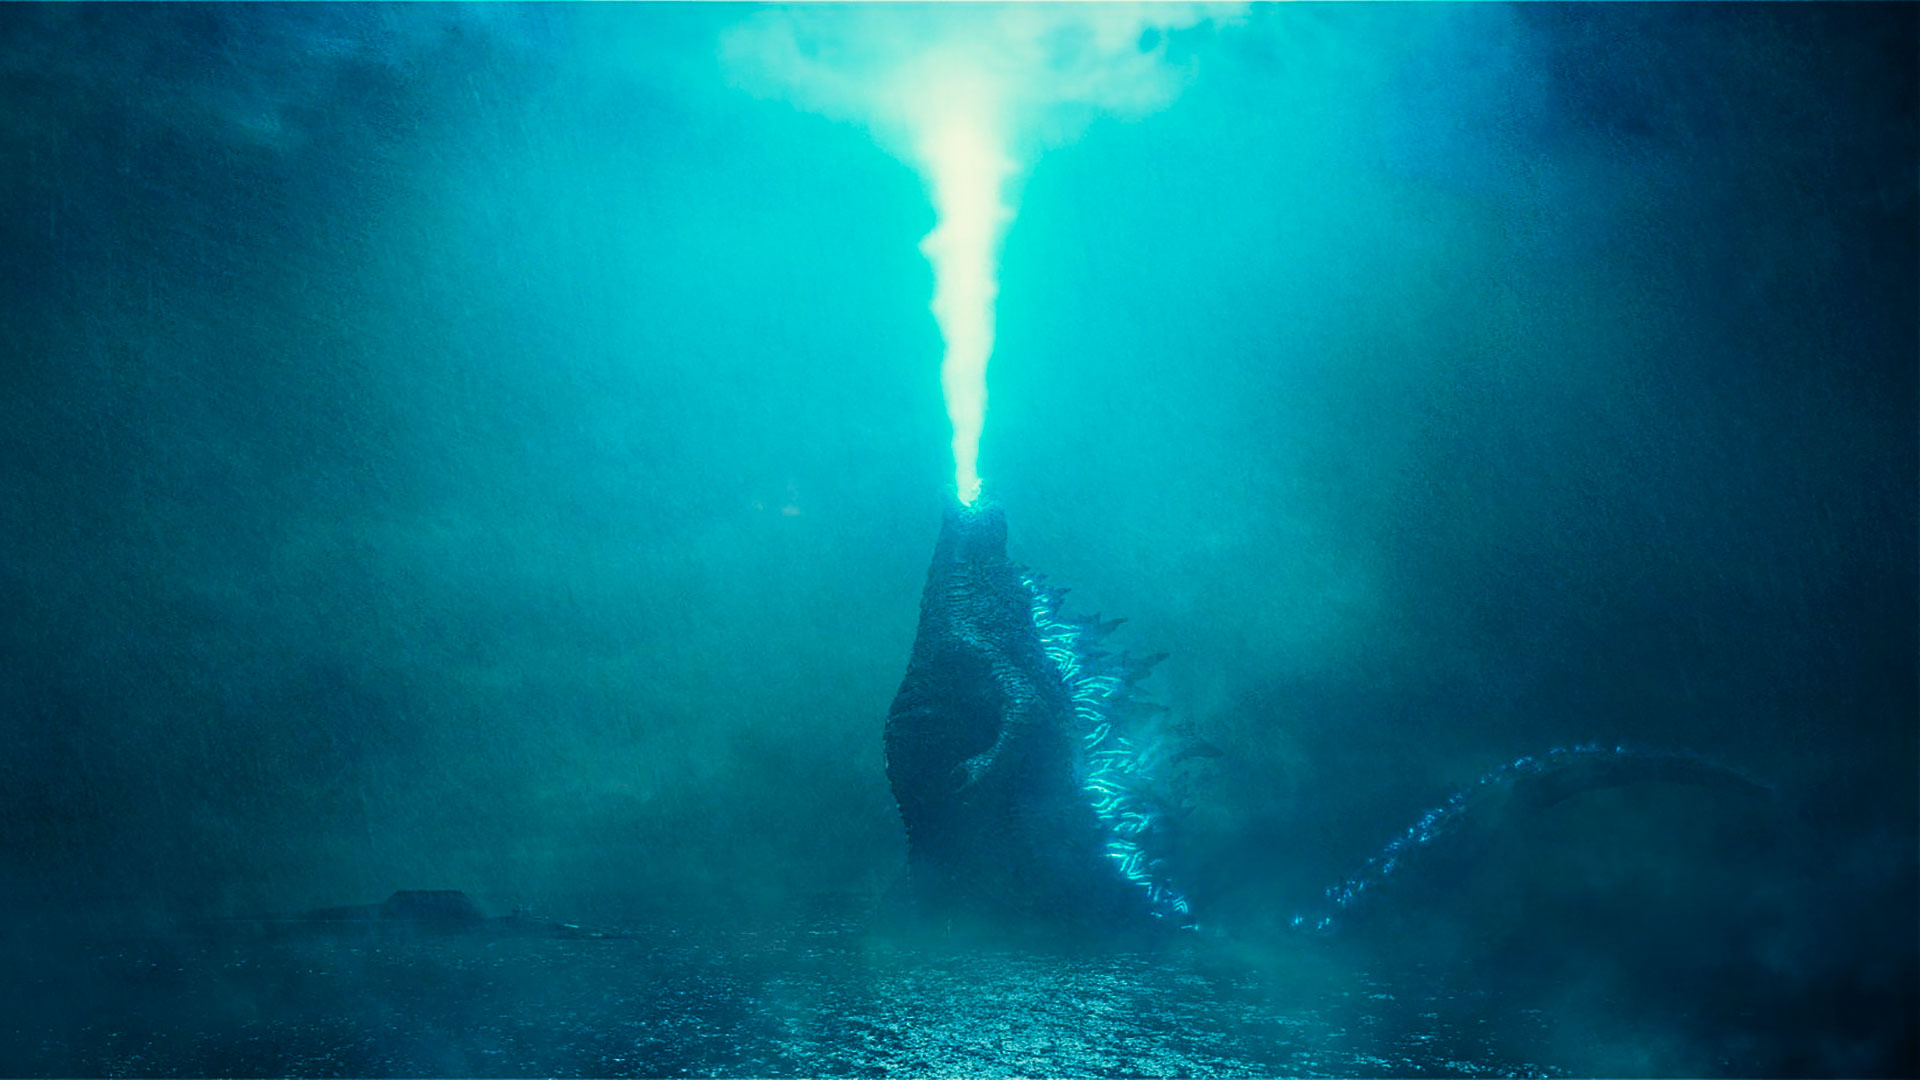 Godzilla: King of the Monsters – Trailer #2